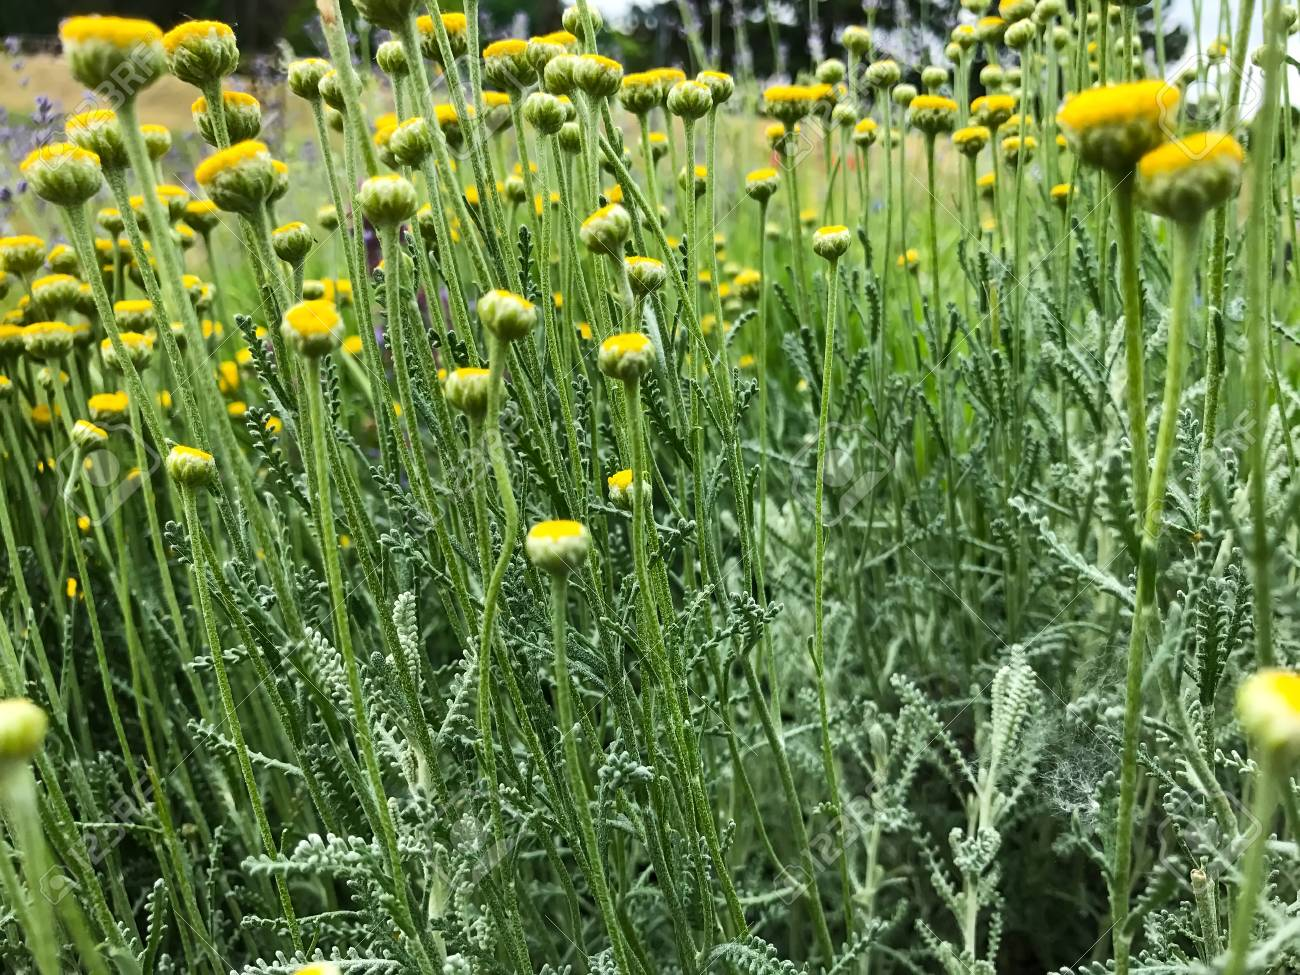 Blooming Meadow Yellow Flowers Of Tansy Tanacetum In The Green